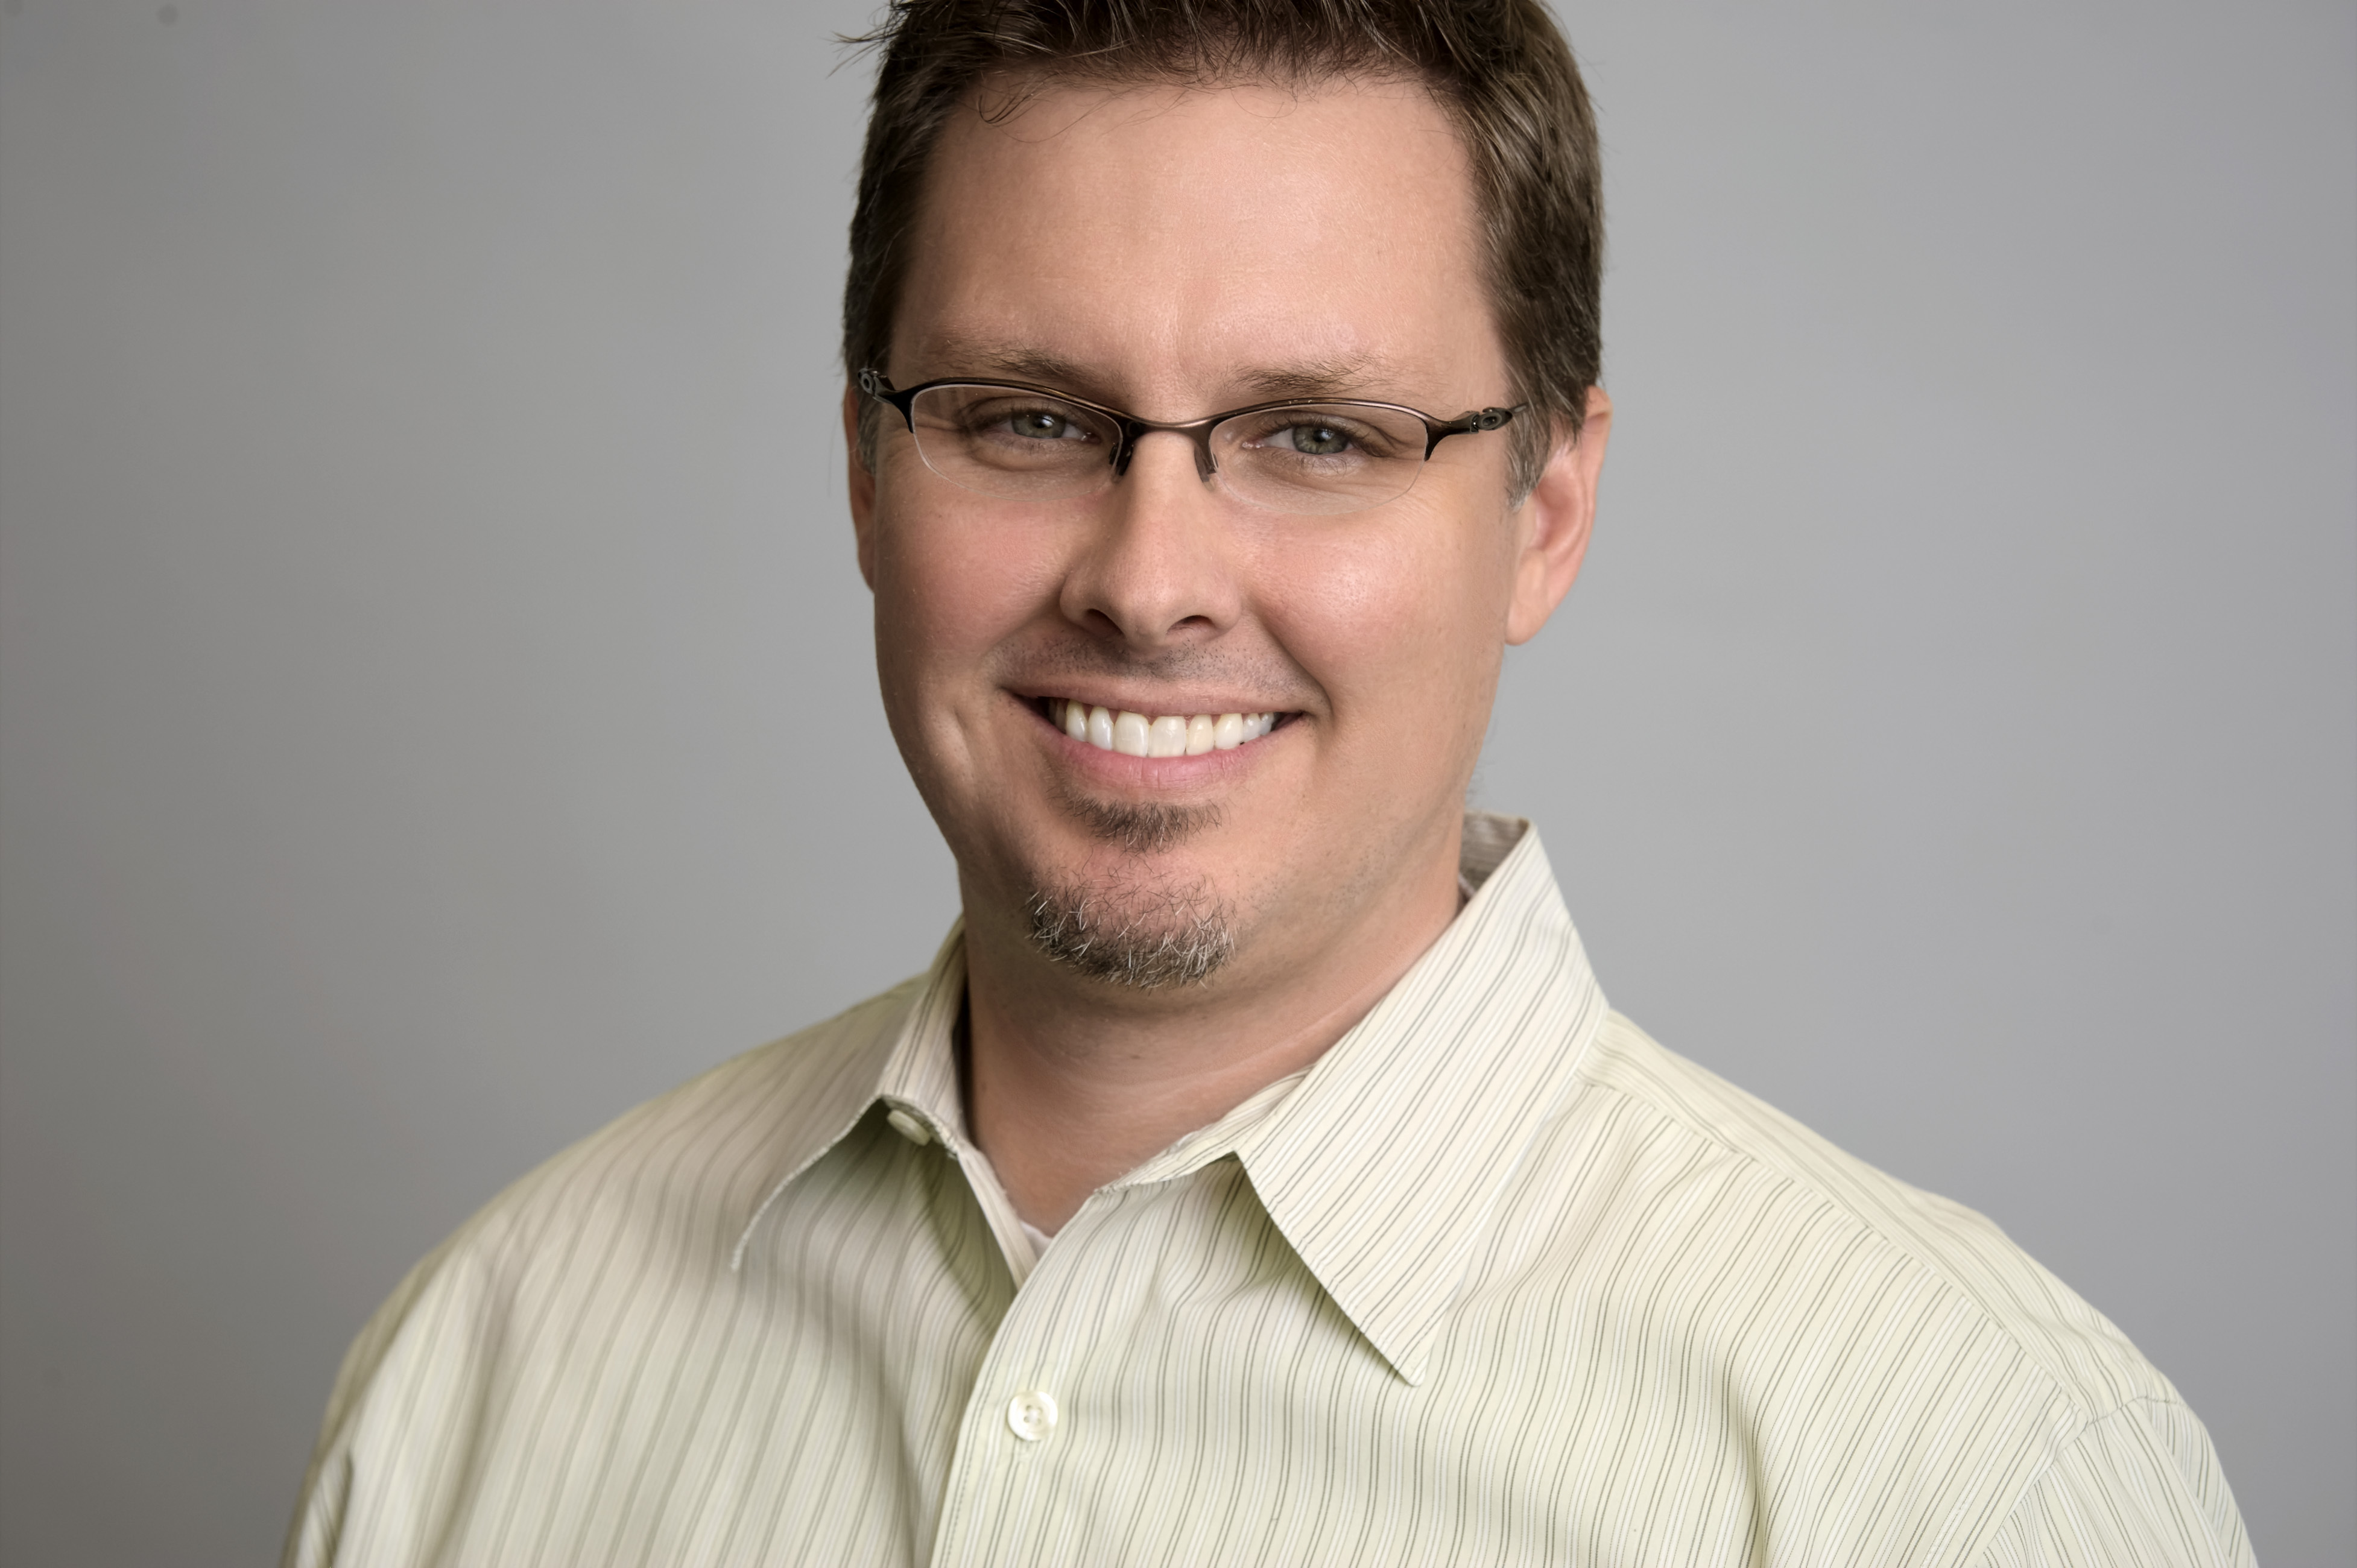 Keith Wymbs, Chief Marketing Officer for Elemental. (Photo: Business Wire)